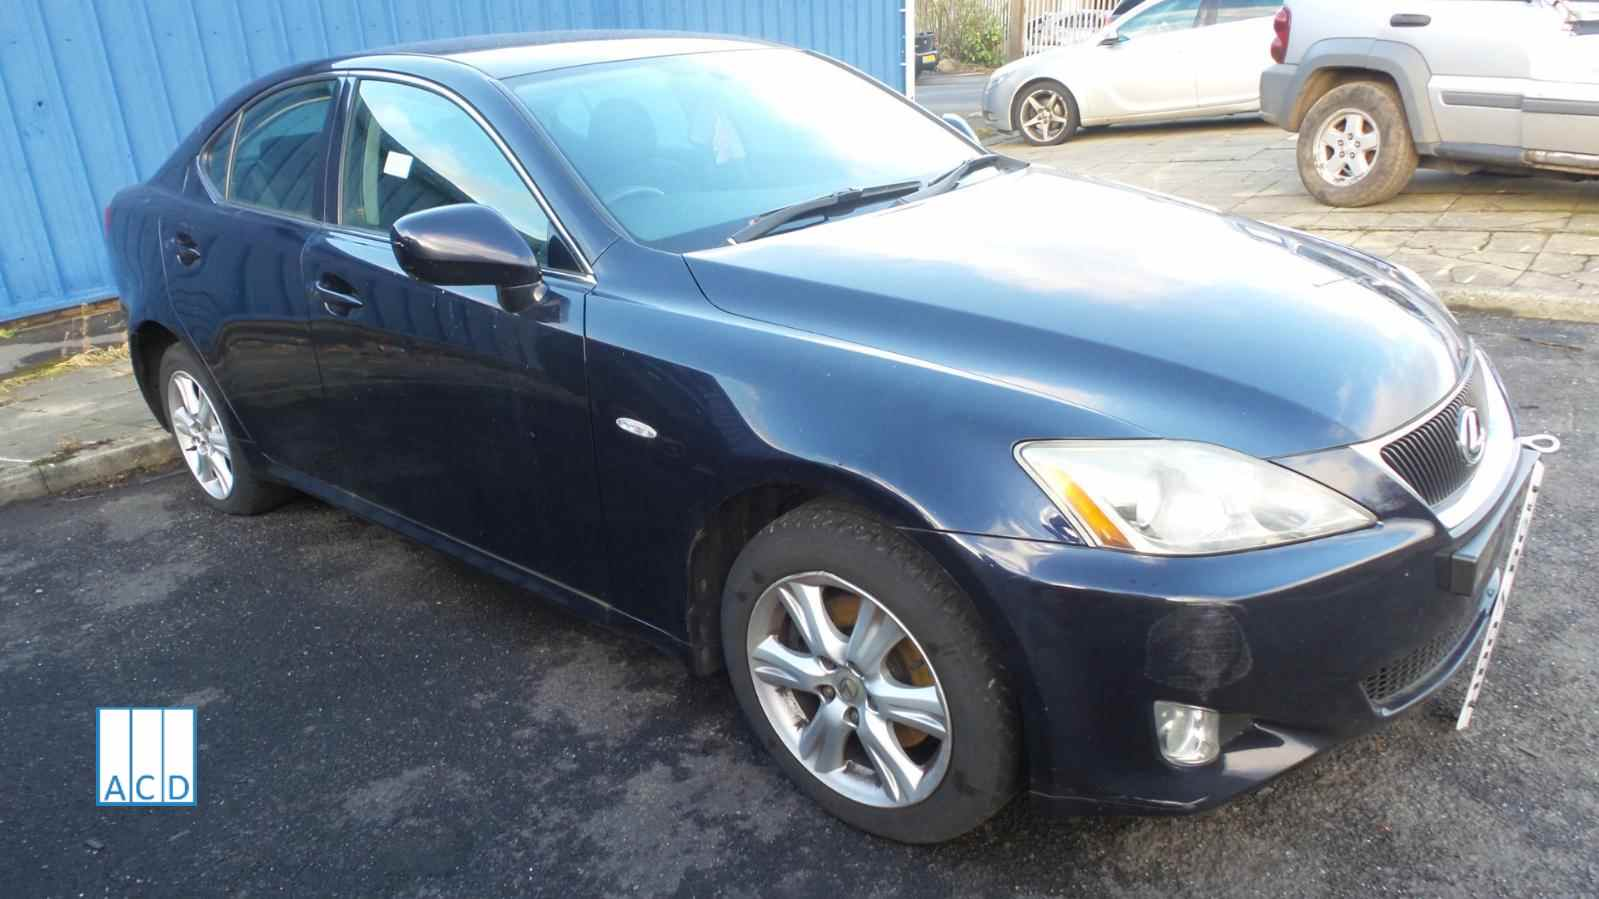 Lexus IS220D SE 2.2L Diesel 6-Speed Manual 2007 #2688 01